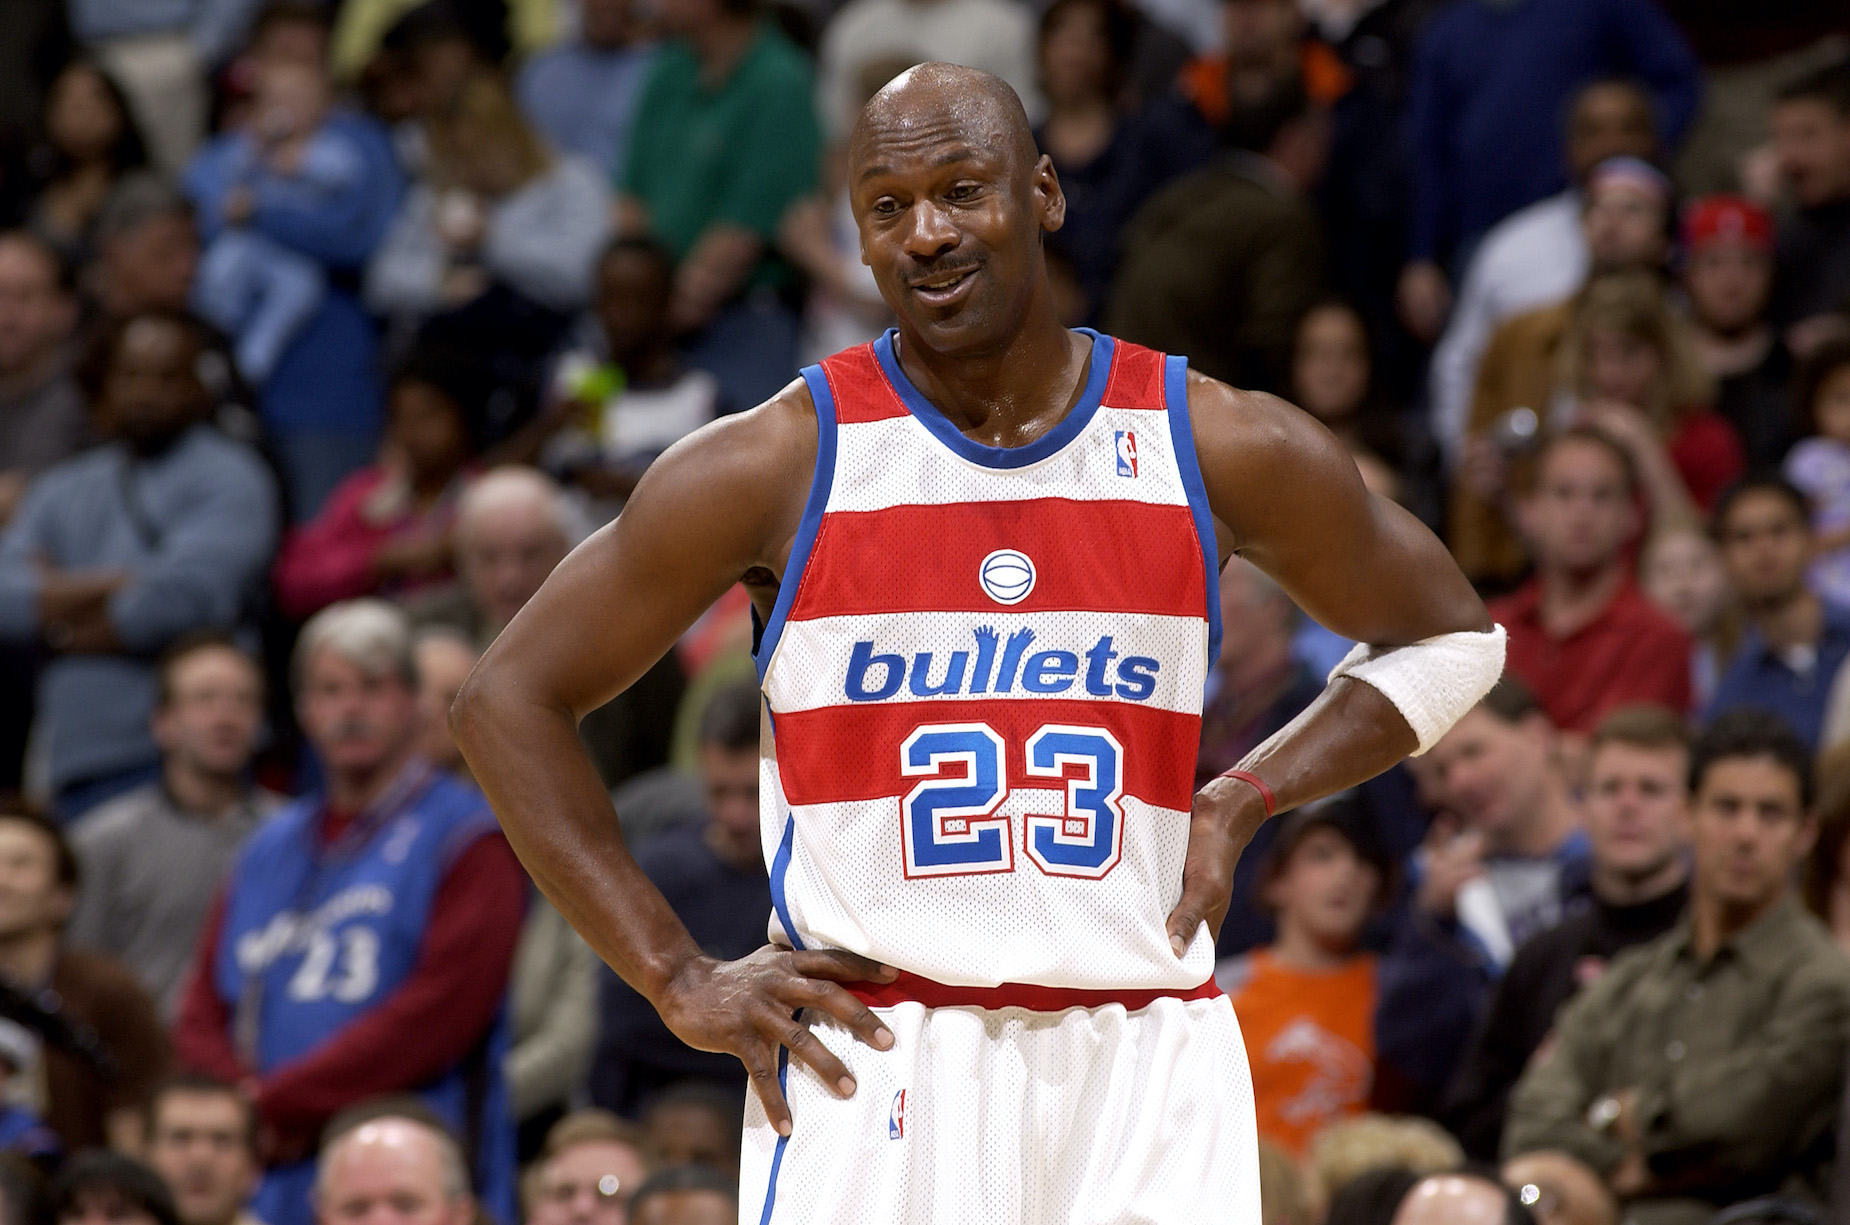 Michael Jordan, who donated all of his 2001-02 salary, in action for the Washington Wizards